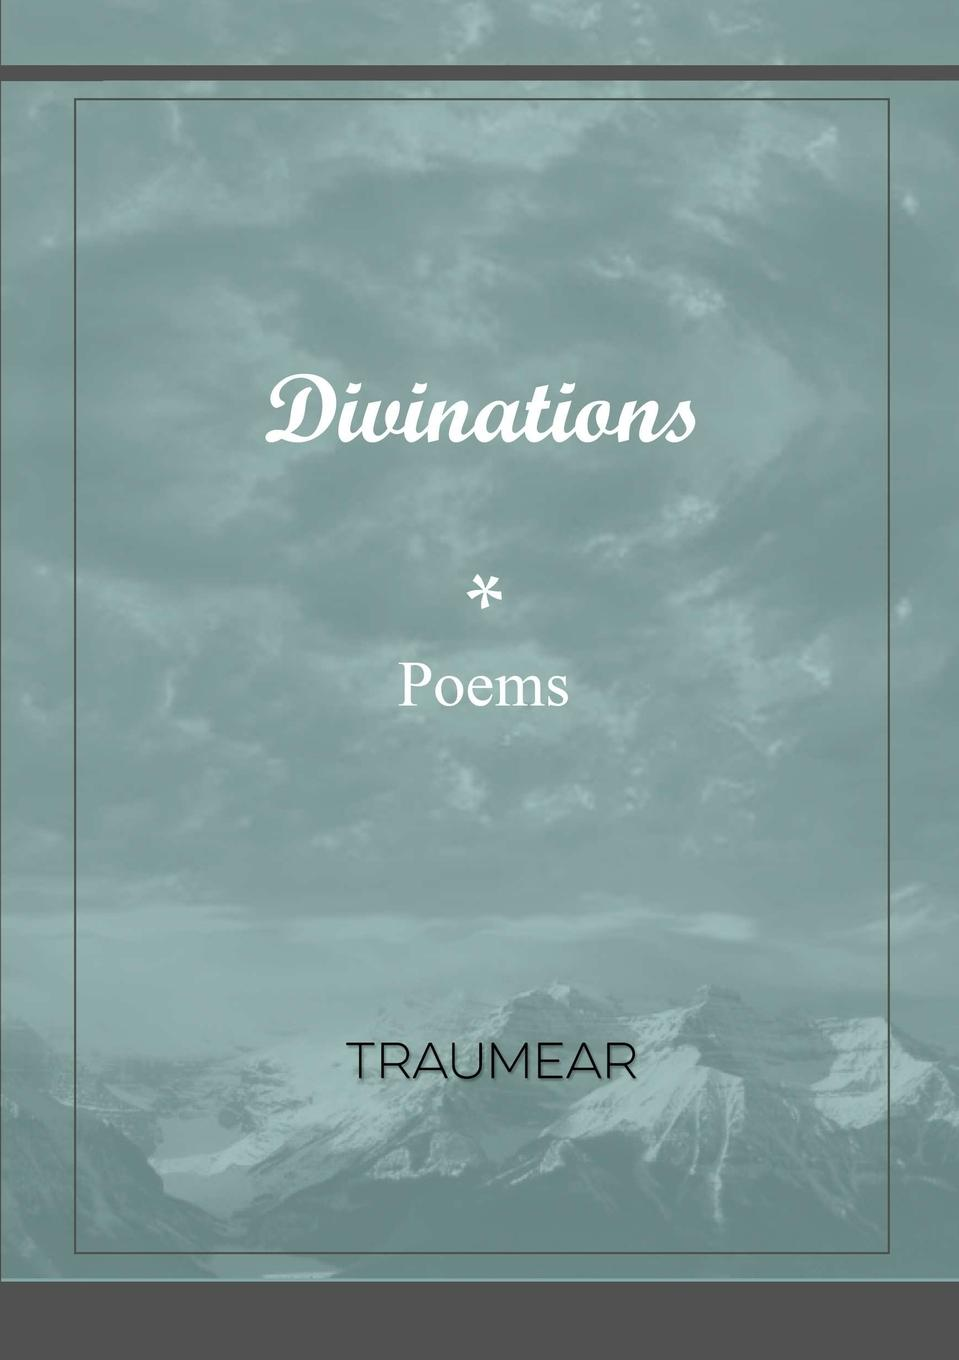 Traumear Divinations study of knowledge transfer in cambodia